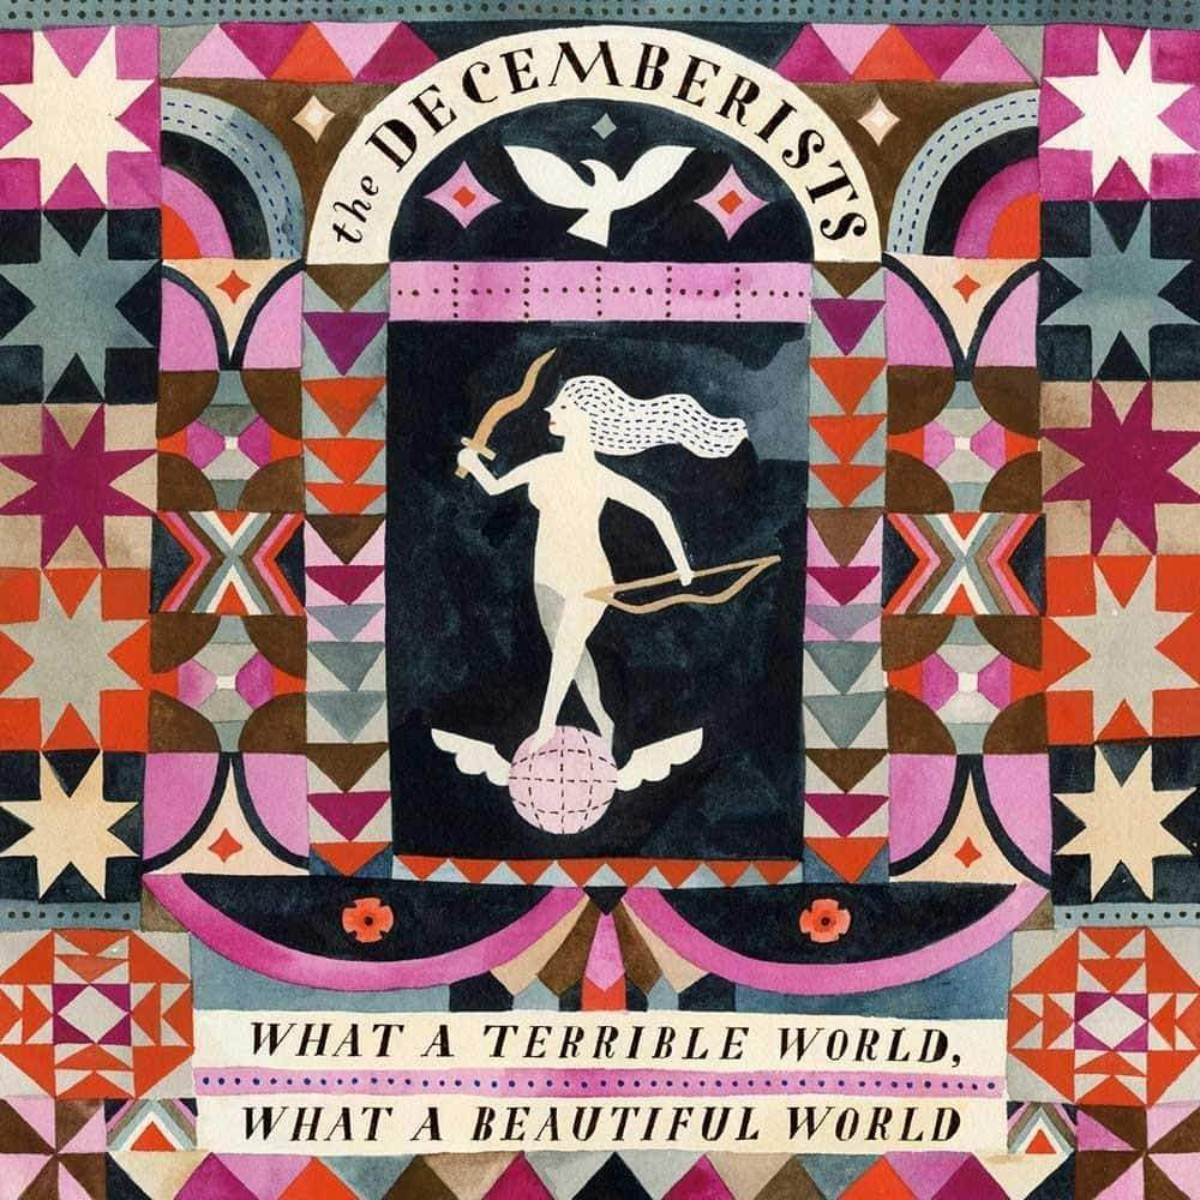 The Decemberists 'What a Terrible World, What a Beautiful World' CD